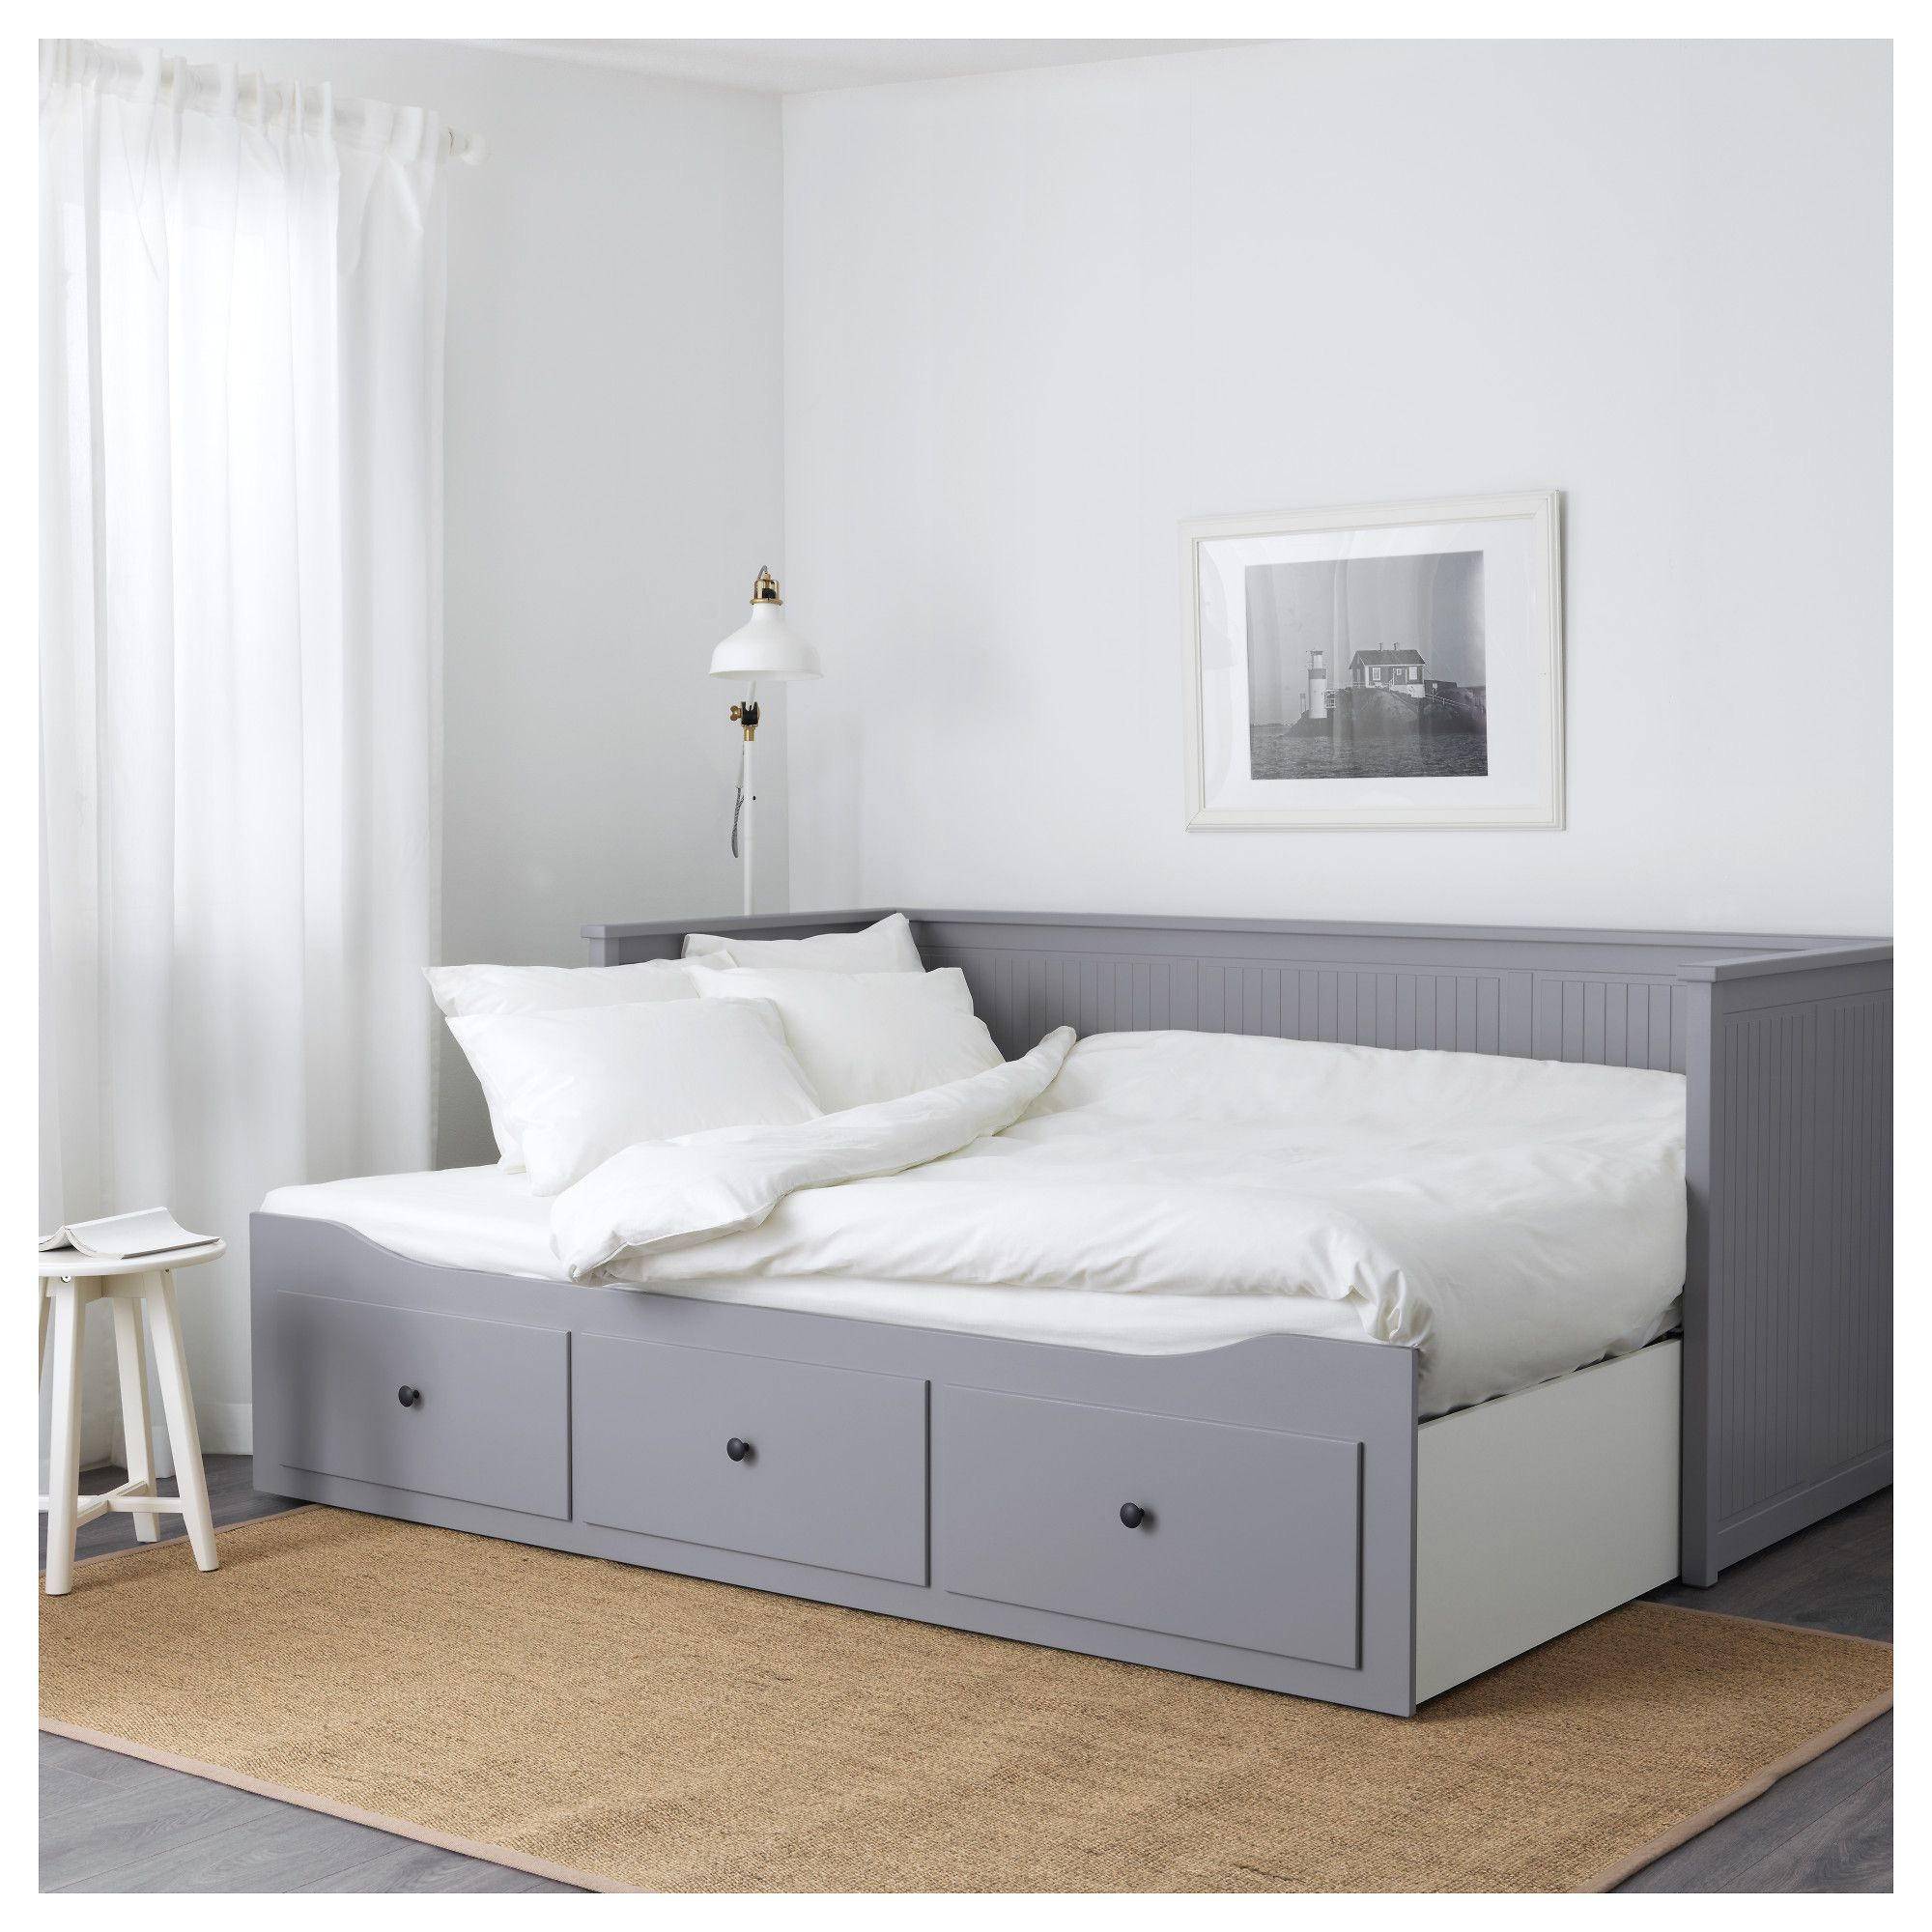 hemnes day bed frame with 3 drawers grey 80 x 200 cm office